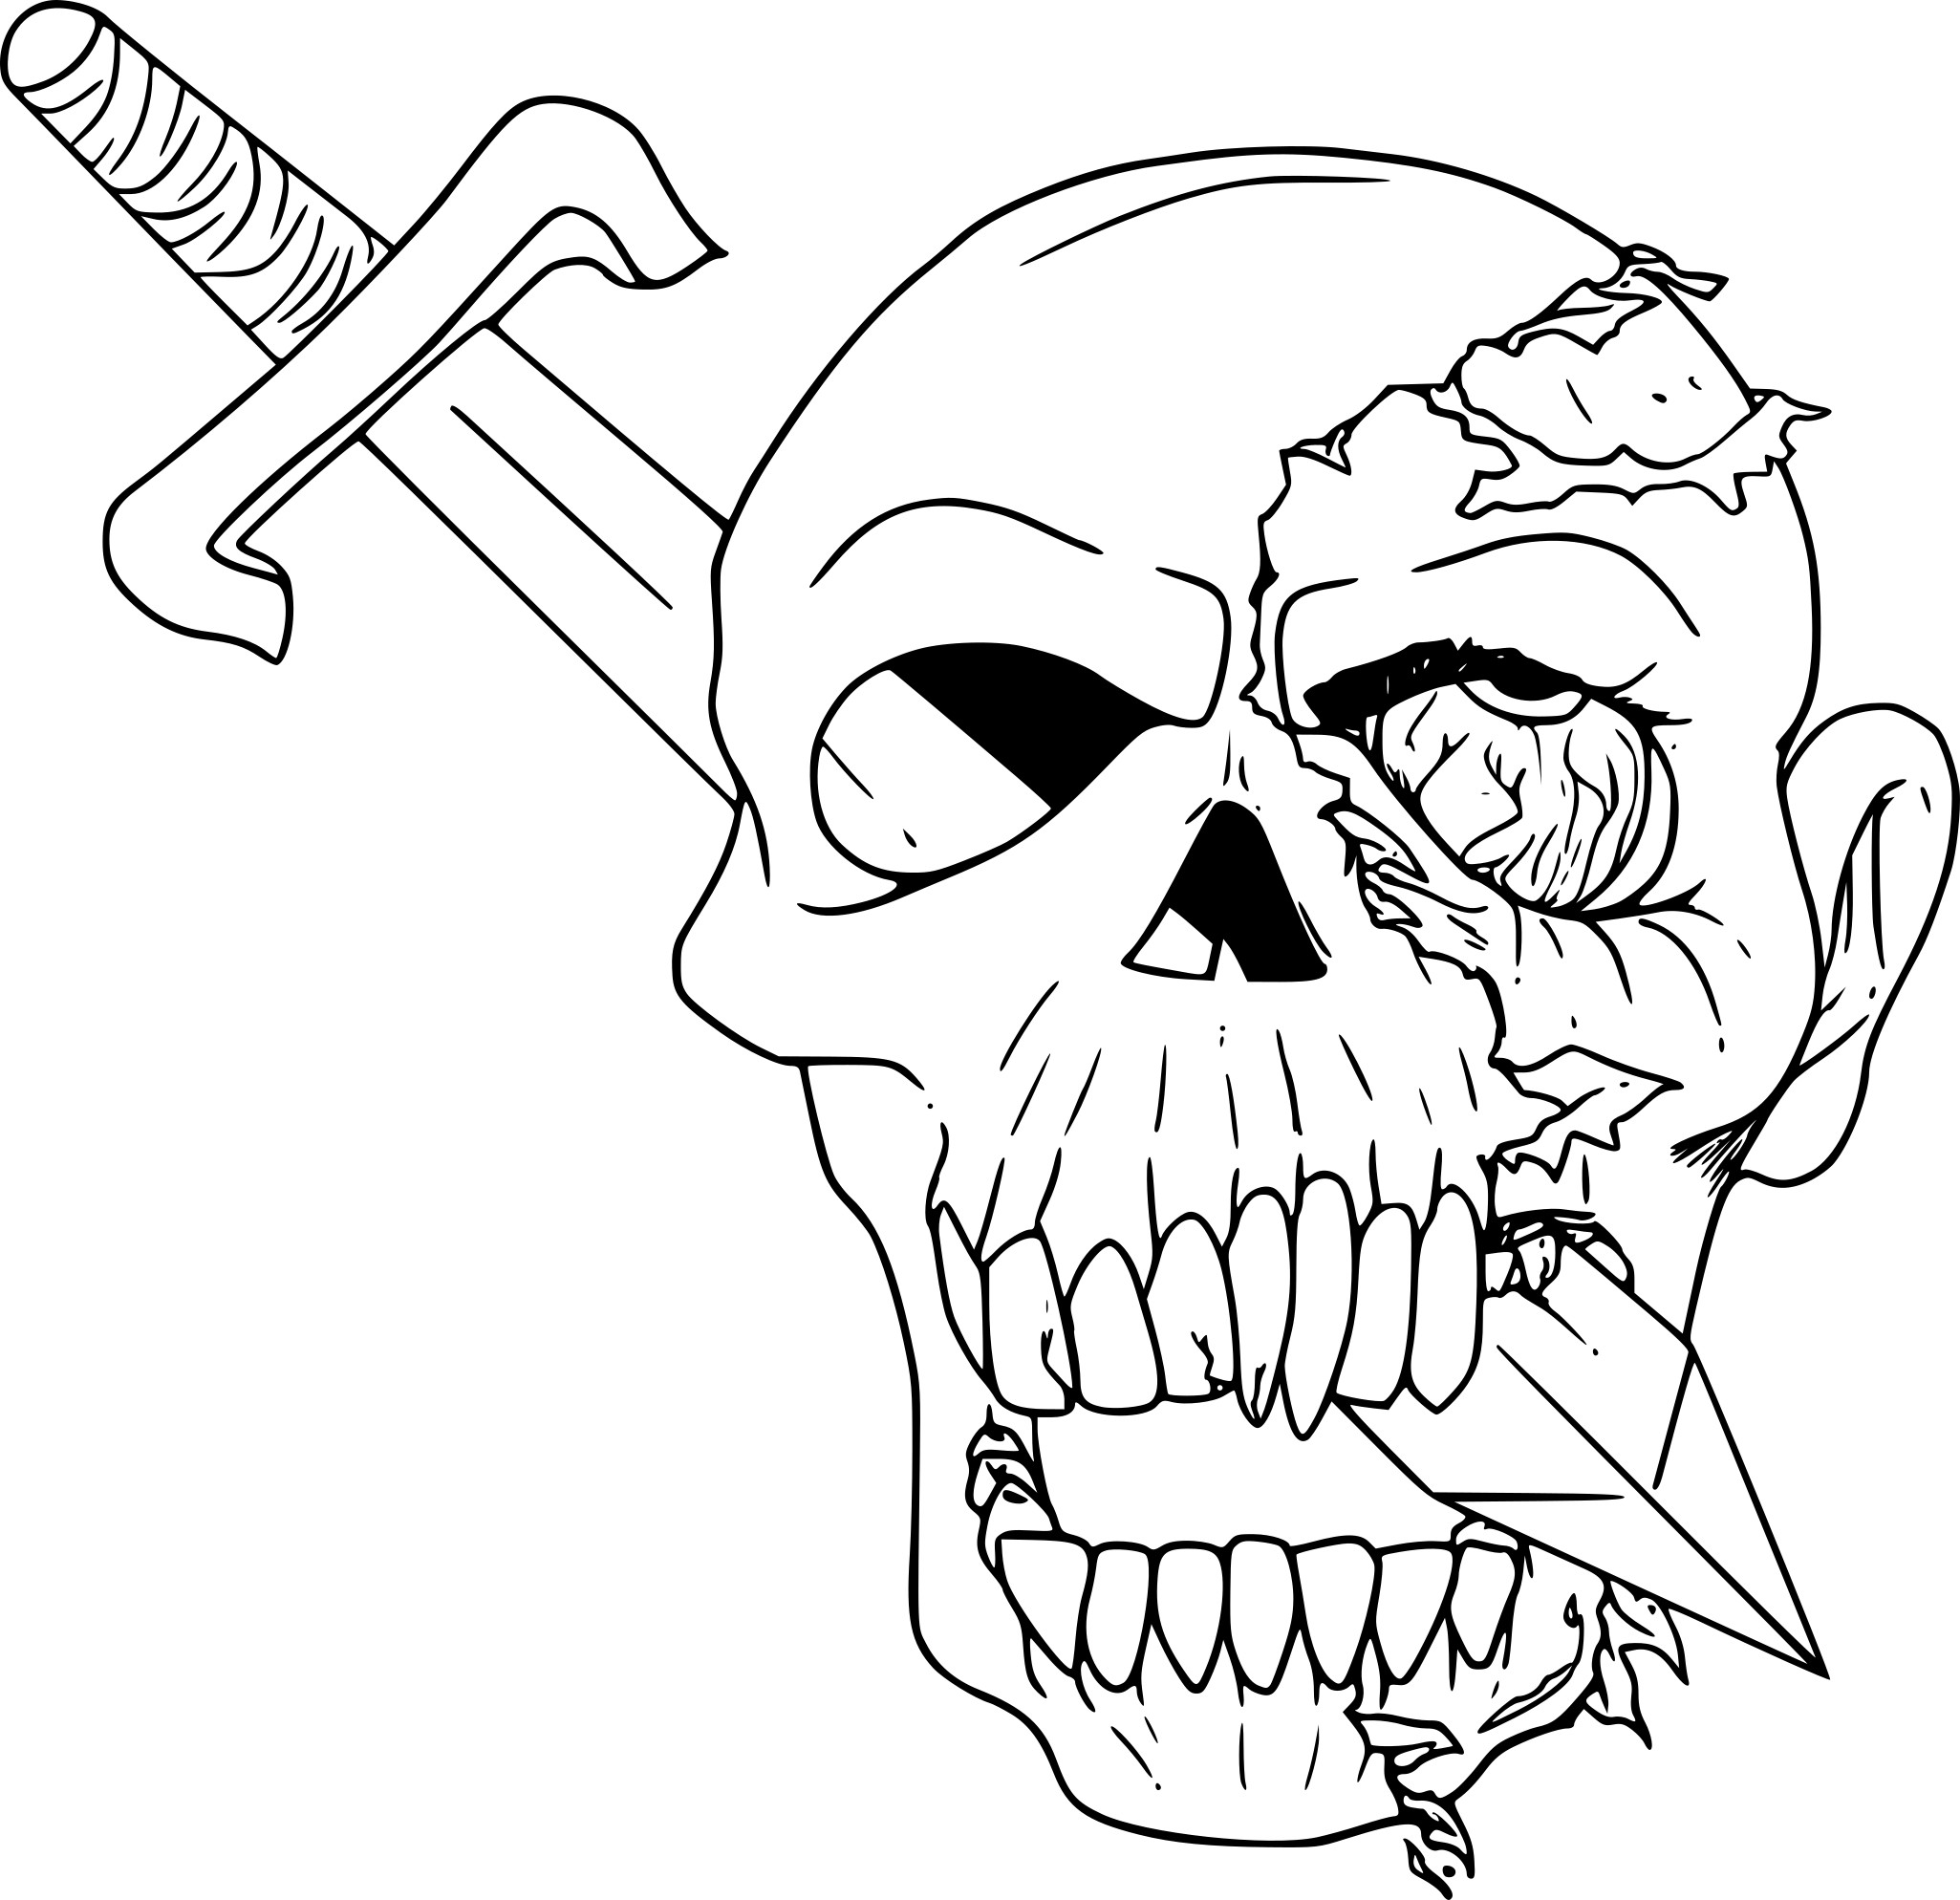 Coloriage crane de pirate